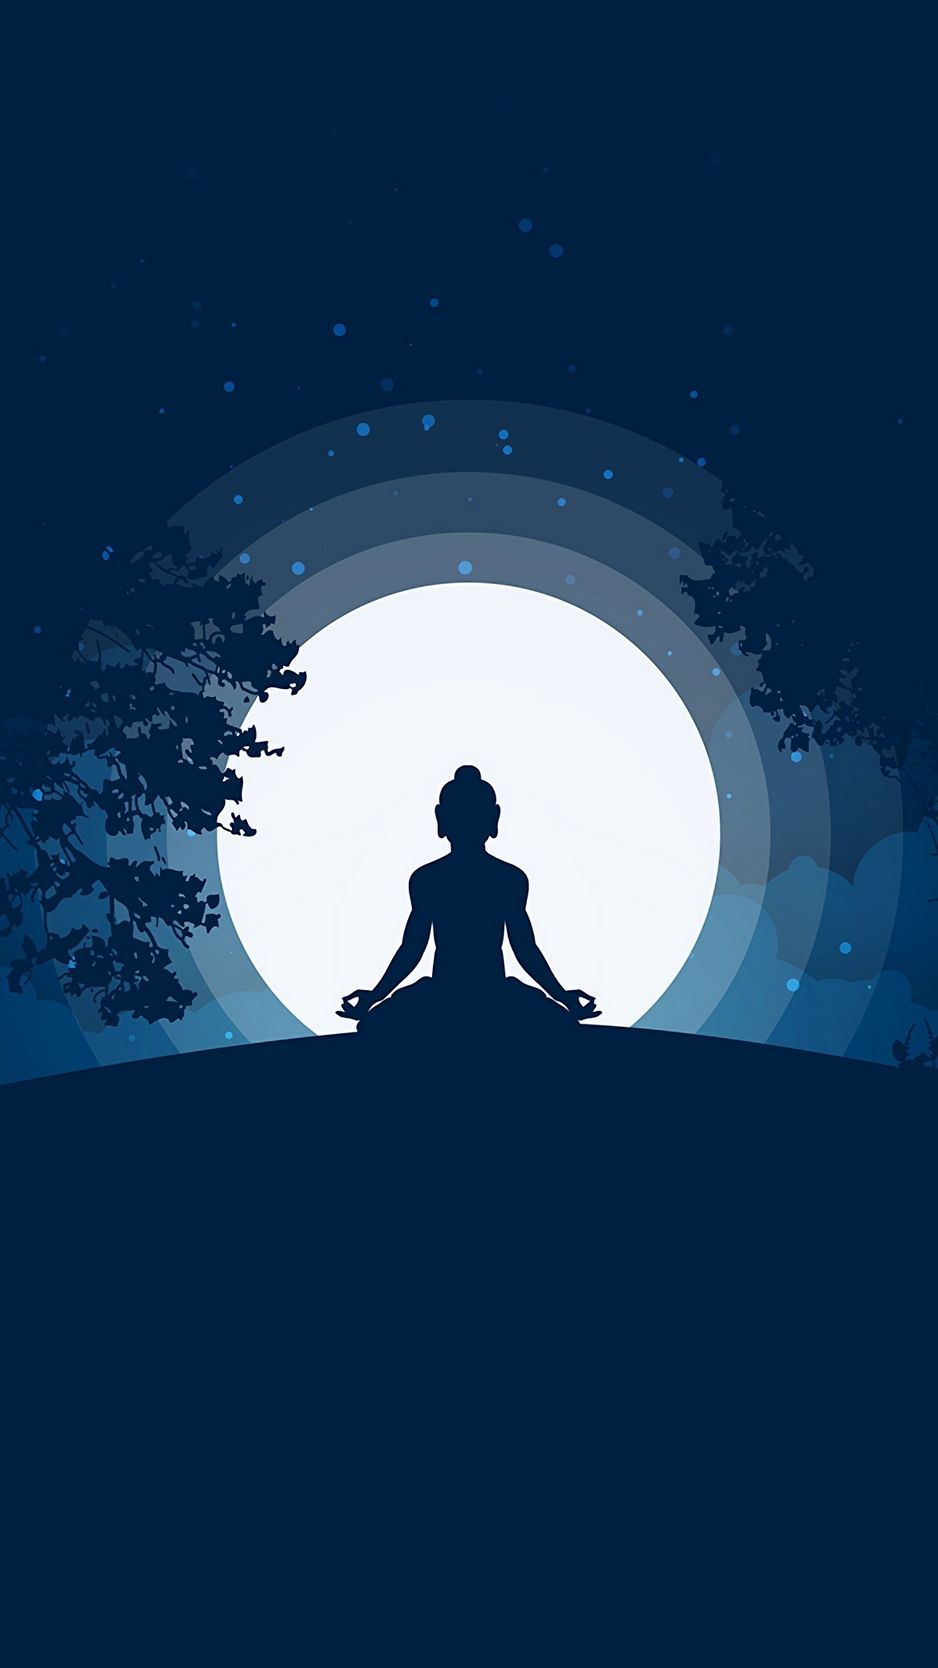 Meditation Iphone Wallpapers Top Free Meditation Iphone Backgrounds Wallpaperaccess